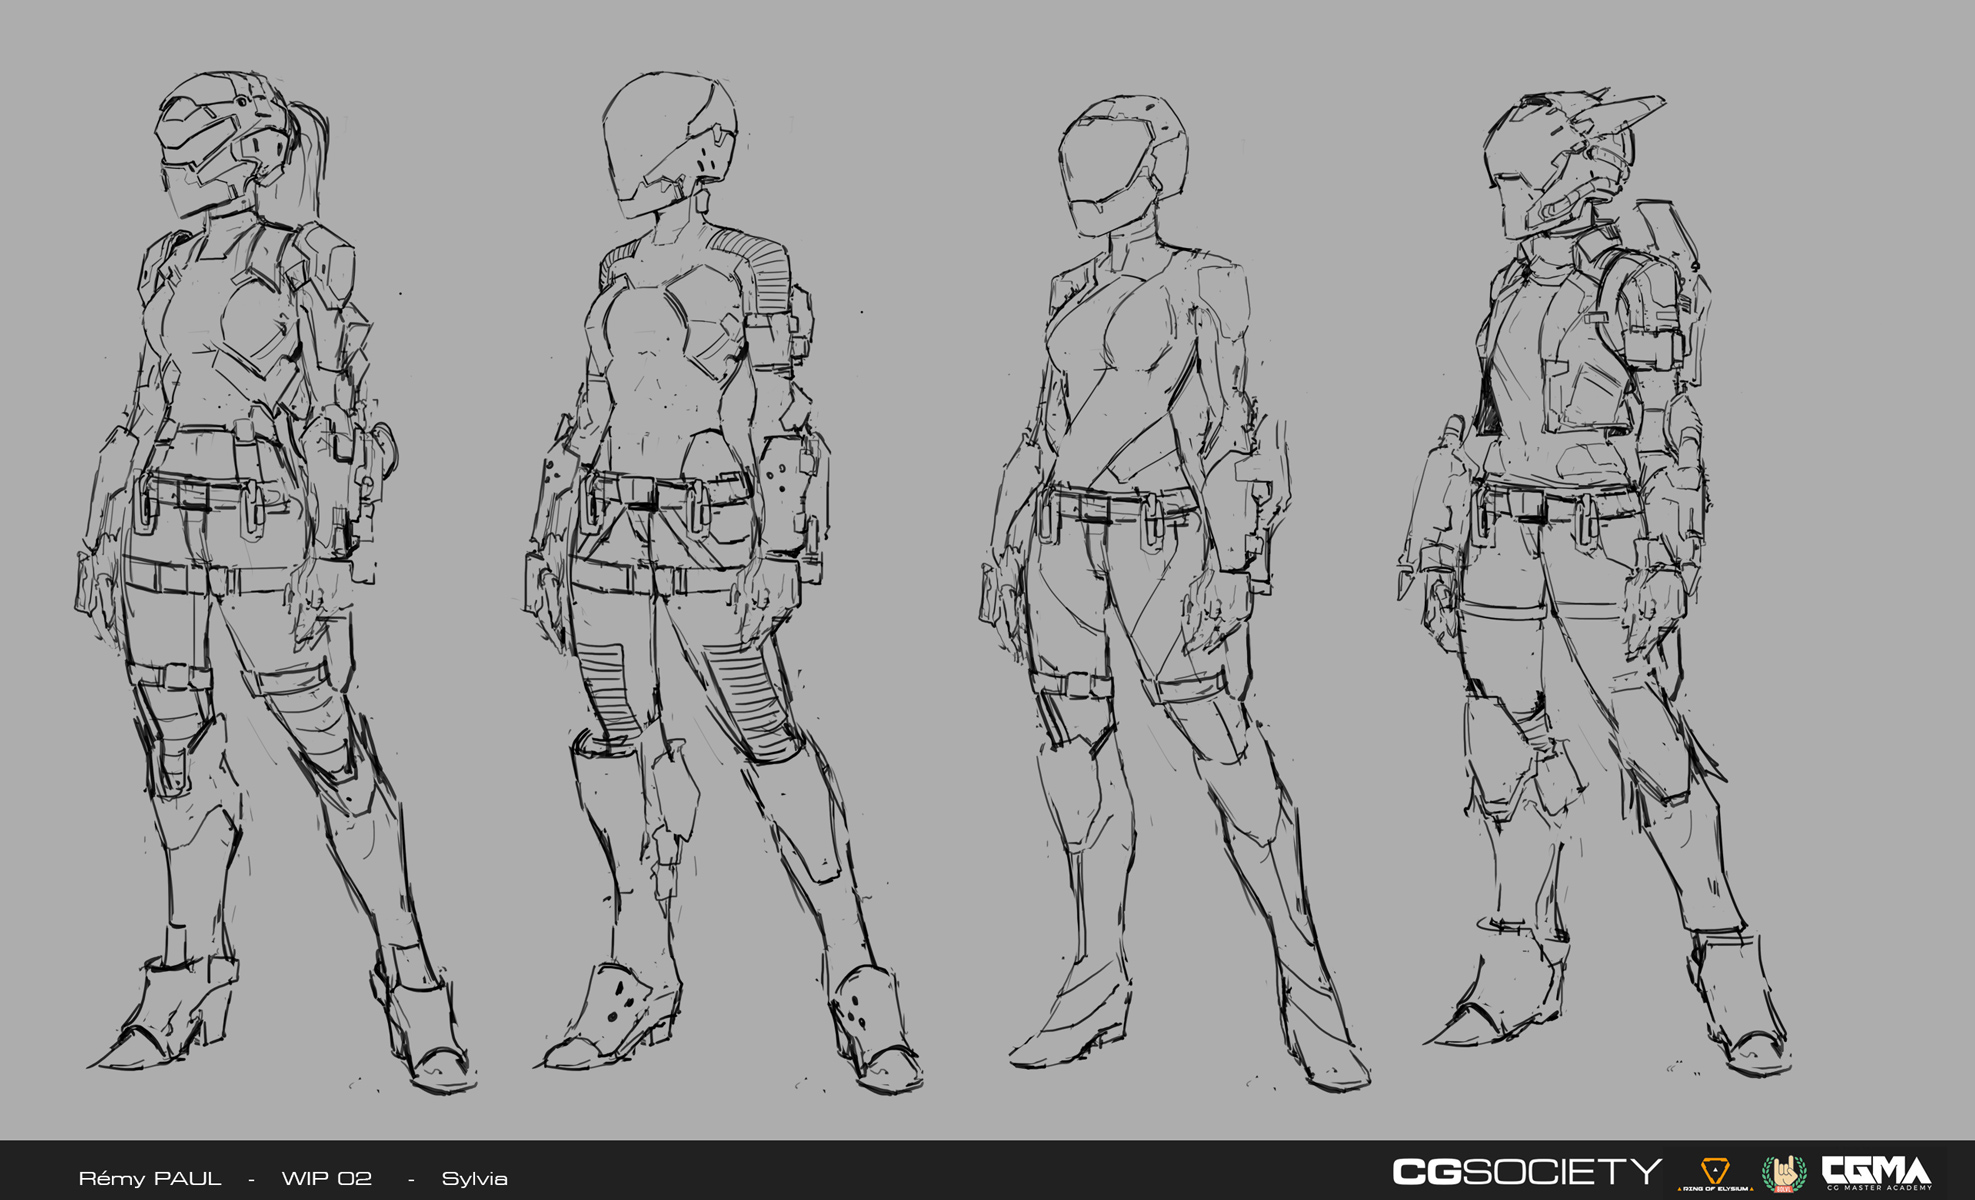 Remy_PAUL_WIP02Cgsociety_concour